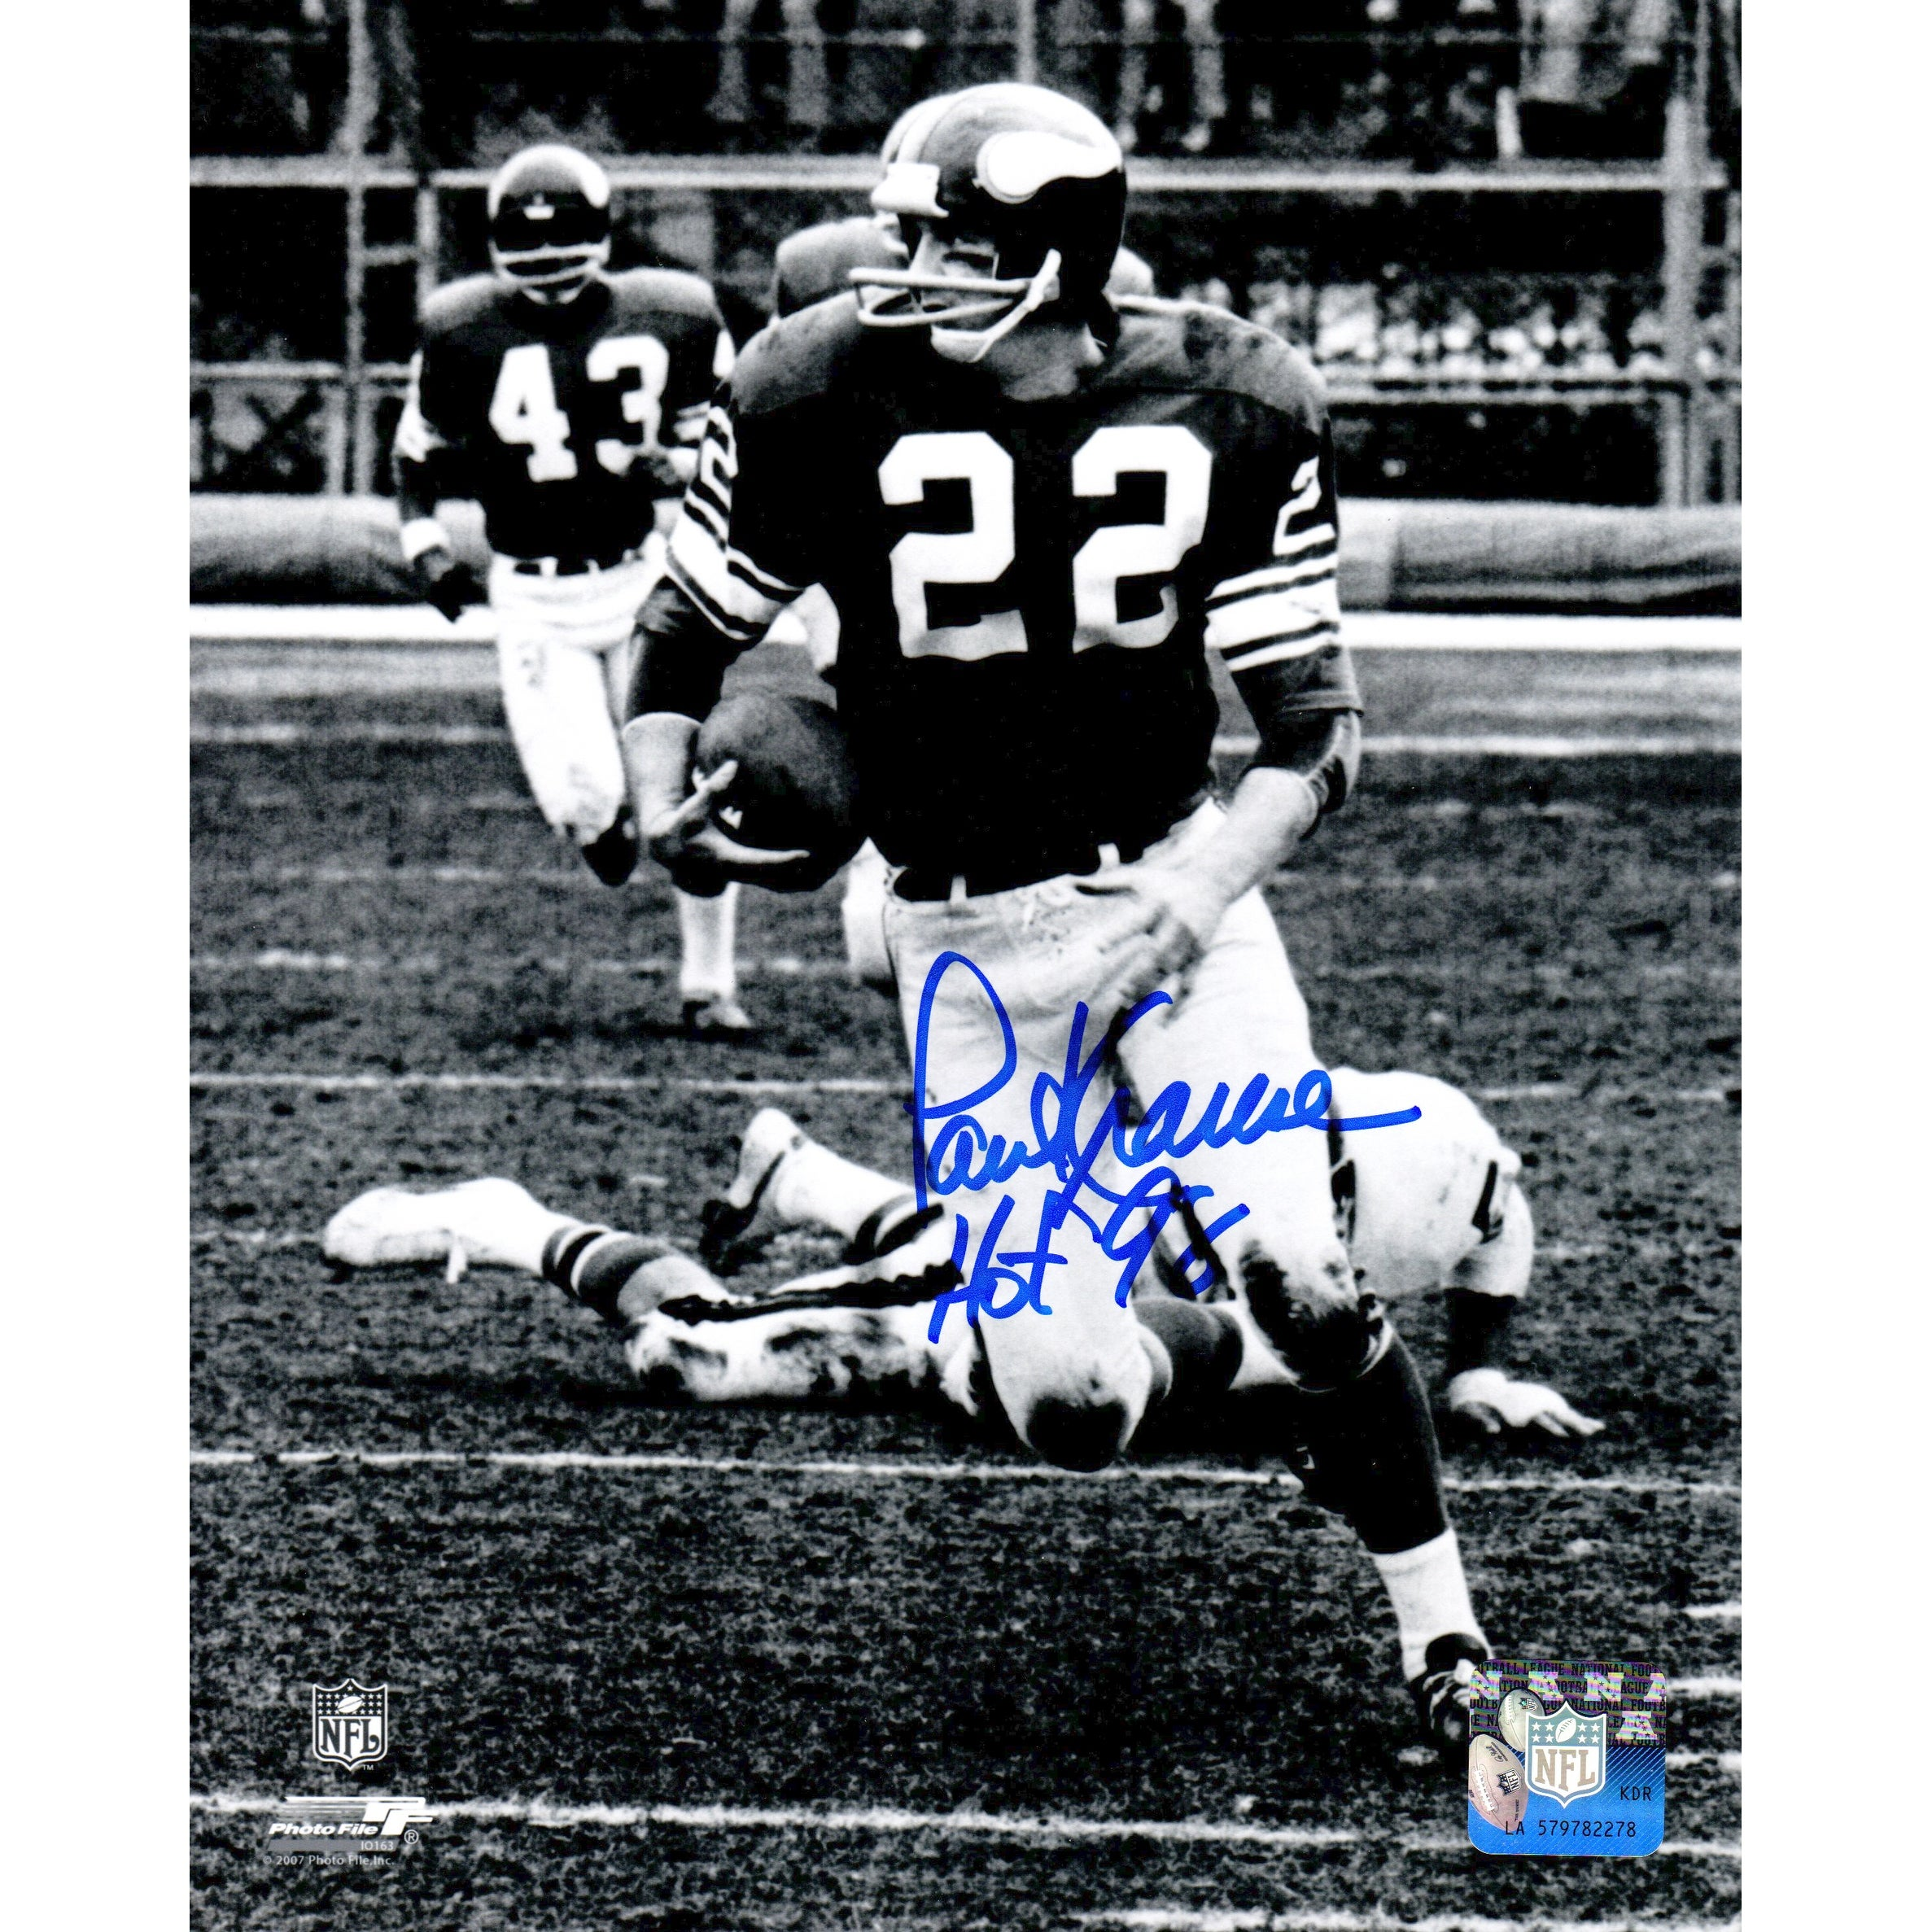 H PAUL KRAUSE MINNESOTA VIKINGS 8X10 SPORTS ACTION PHOTO